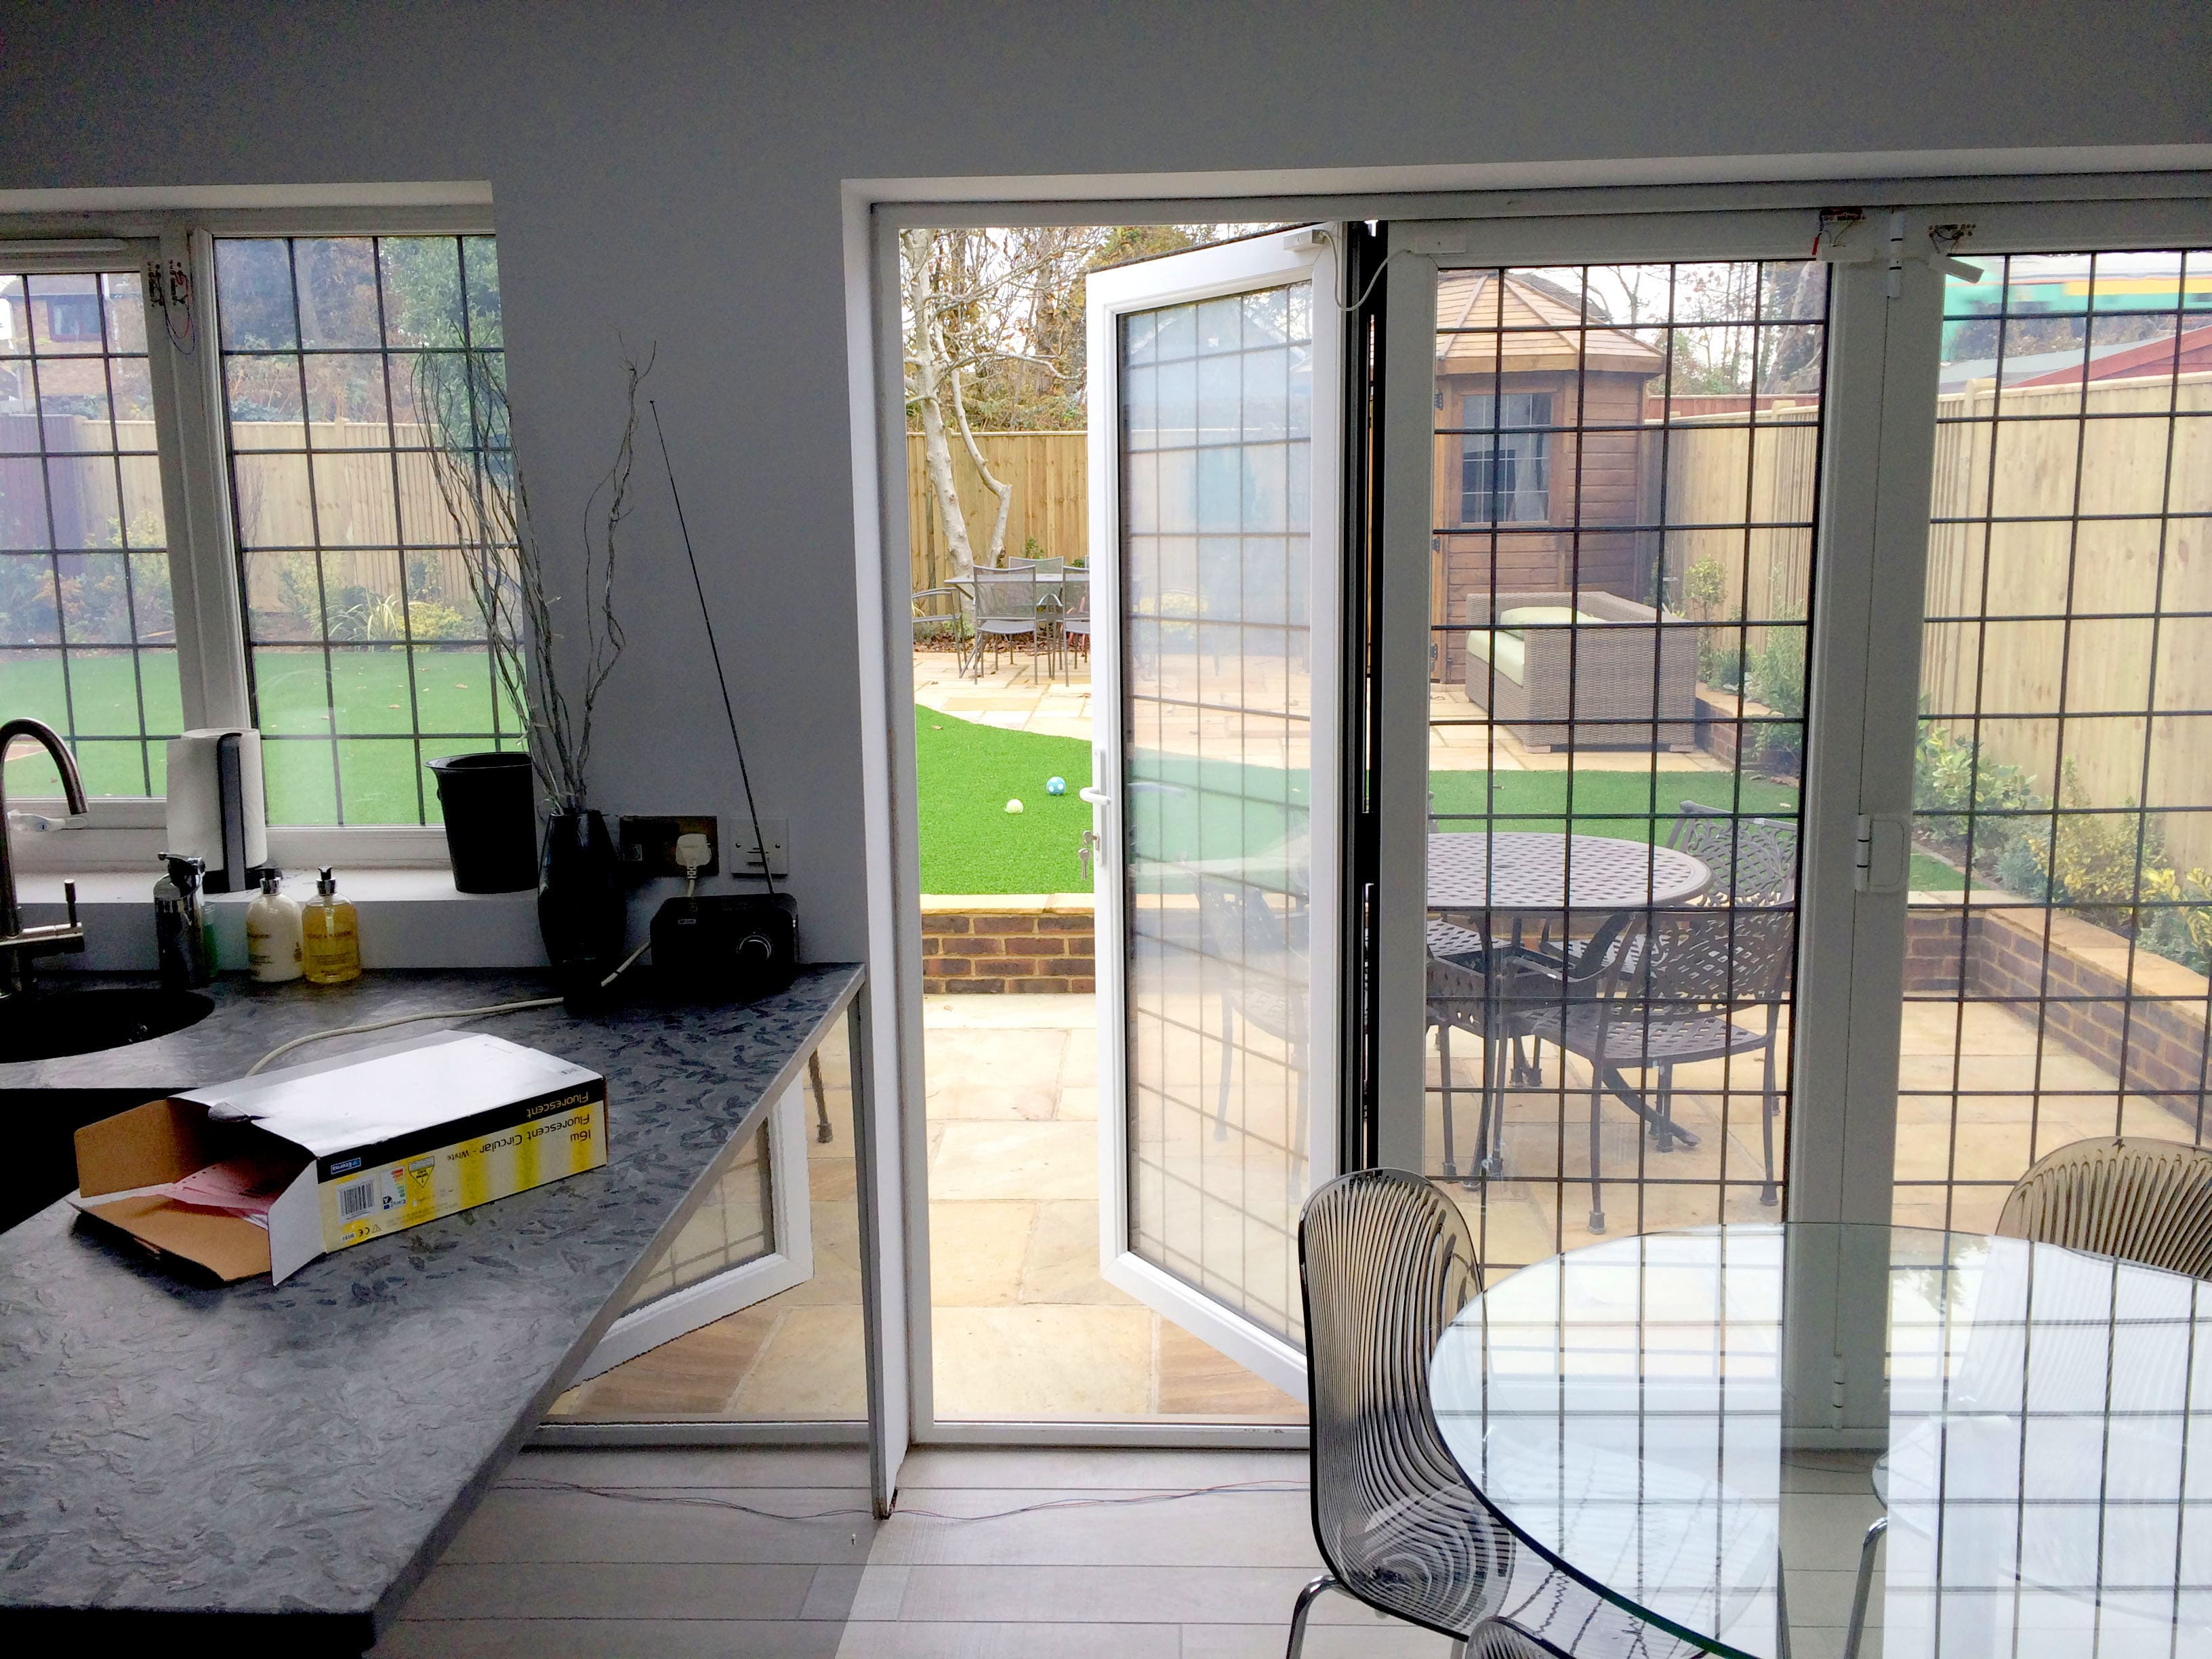 Double Glazed Smart Glass BiFold Doors in a kitchen switched to on